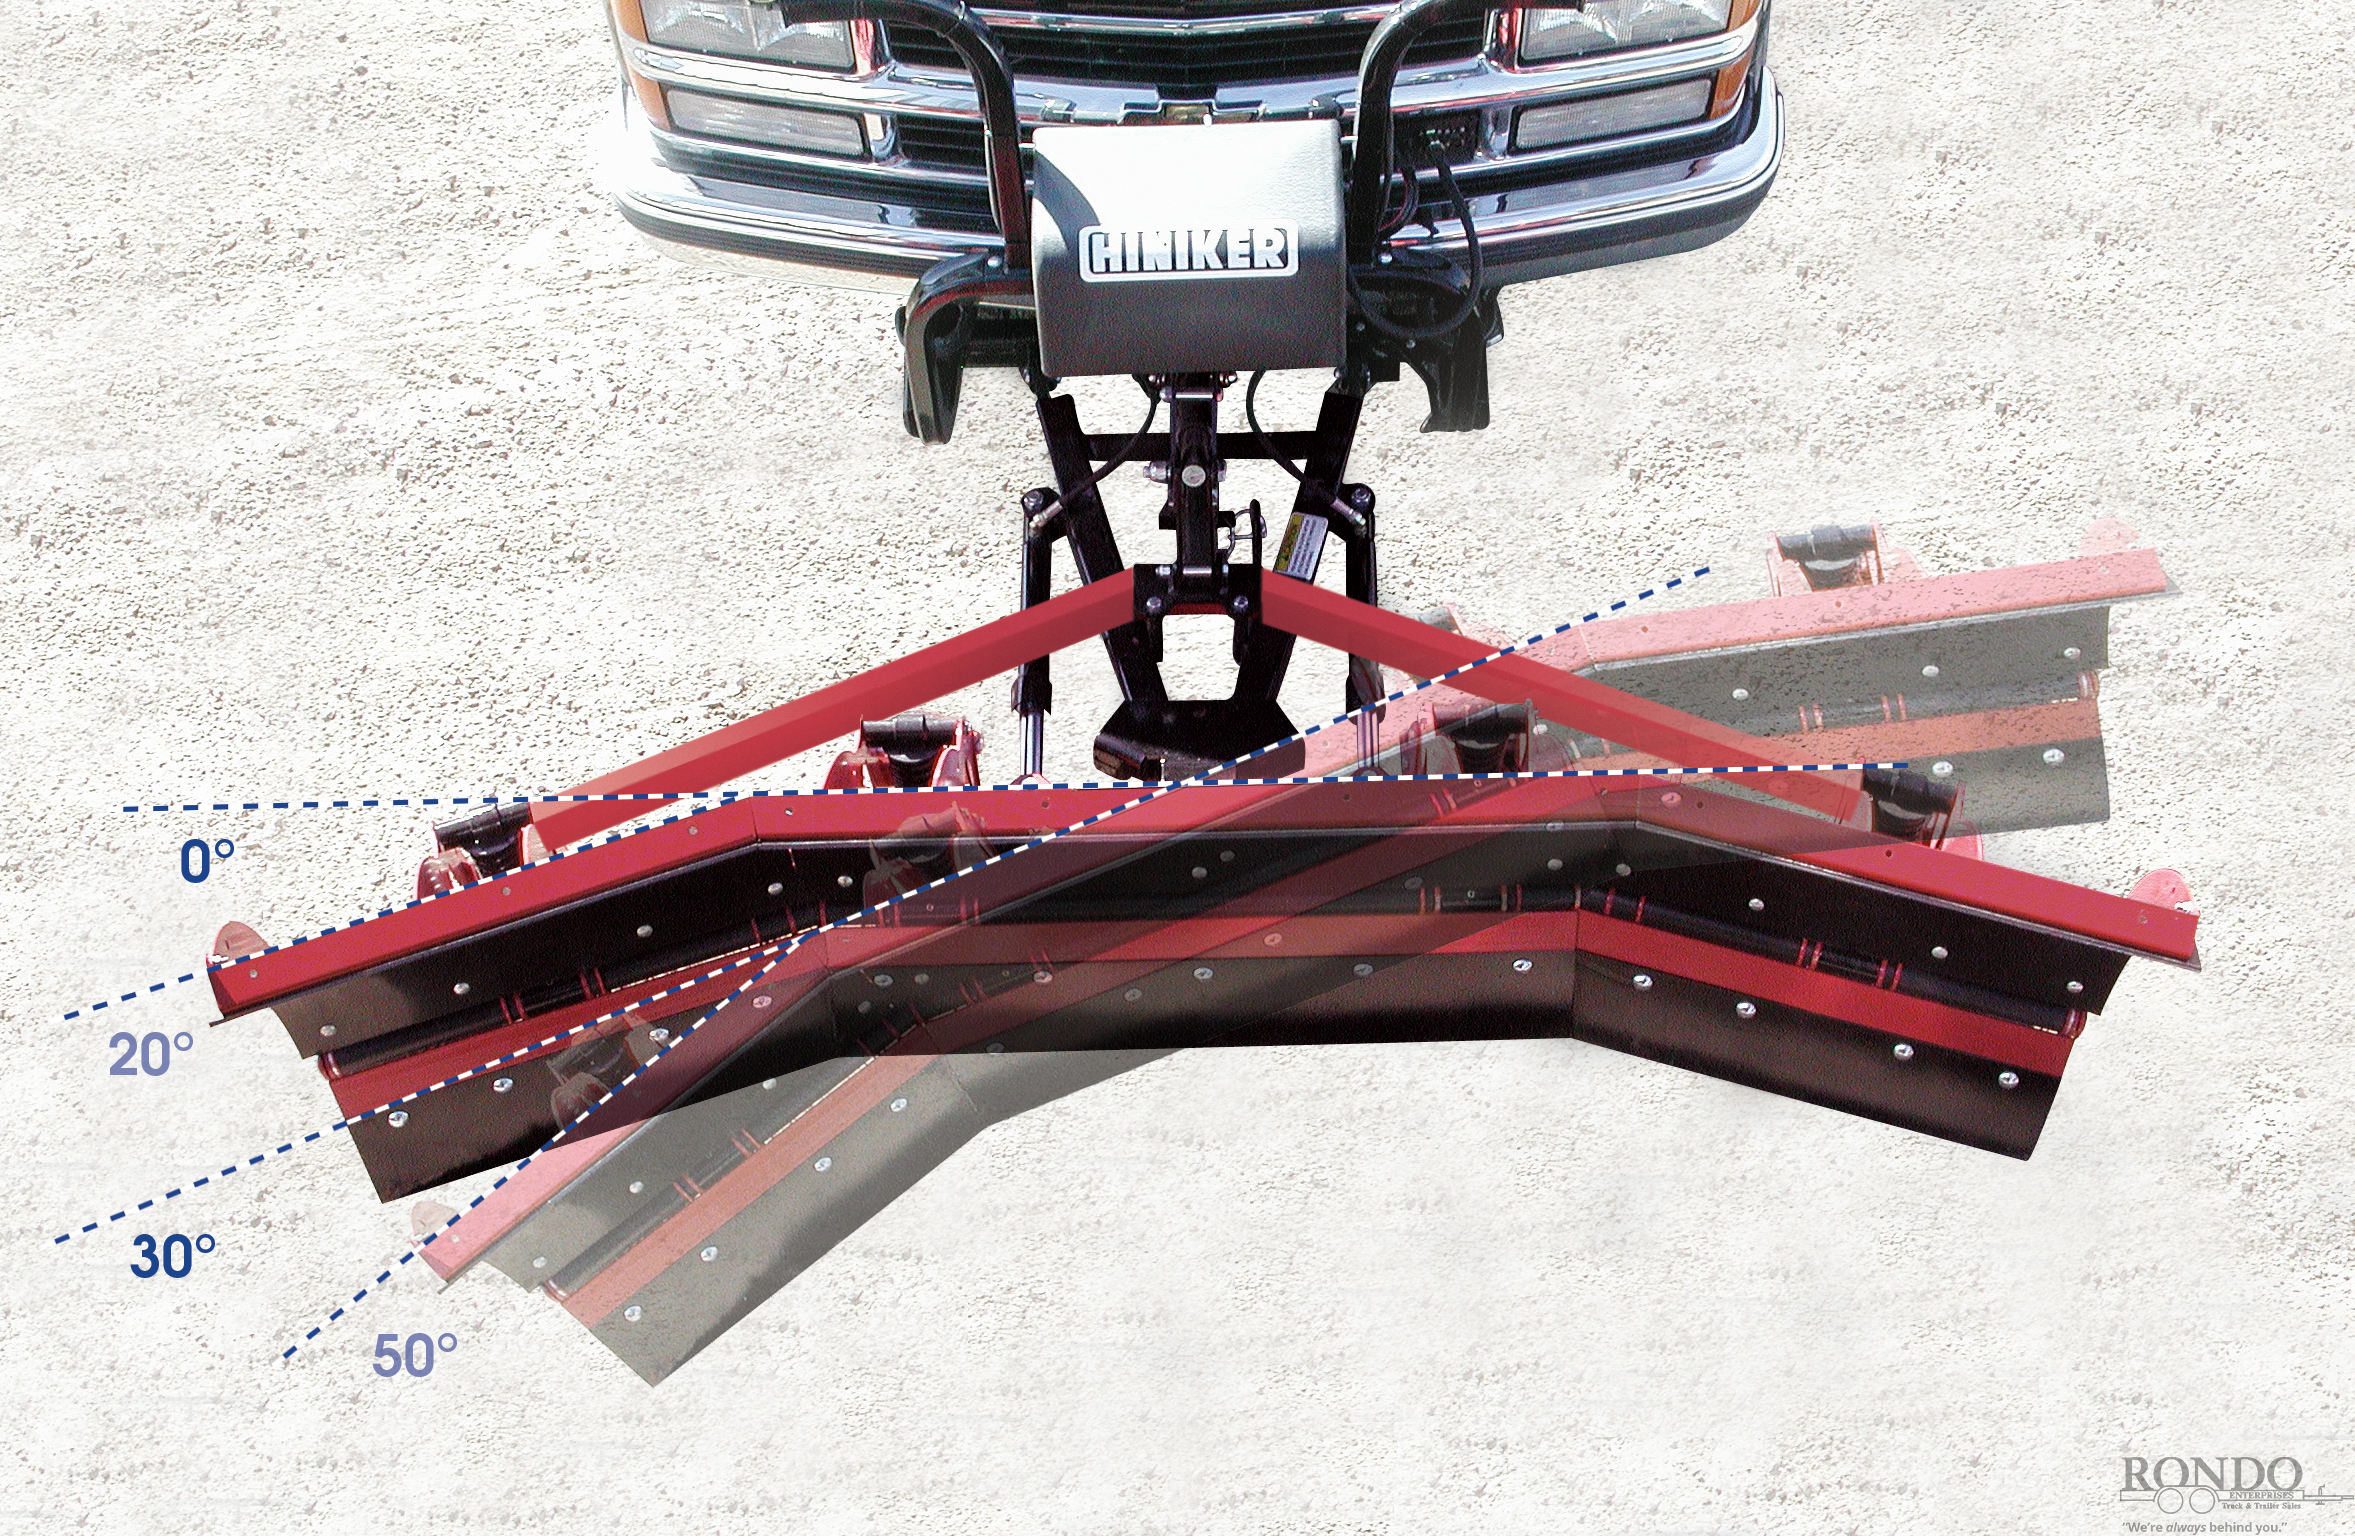 New Hiniker 8 Scoop Poly Plow For Skid Steer With Trip Edge And Snow Wiring Harness Crossover Relief Valve